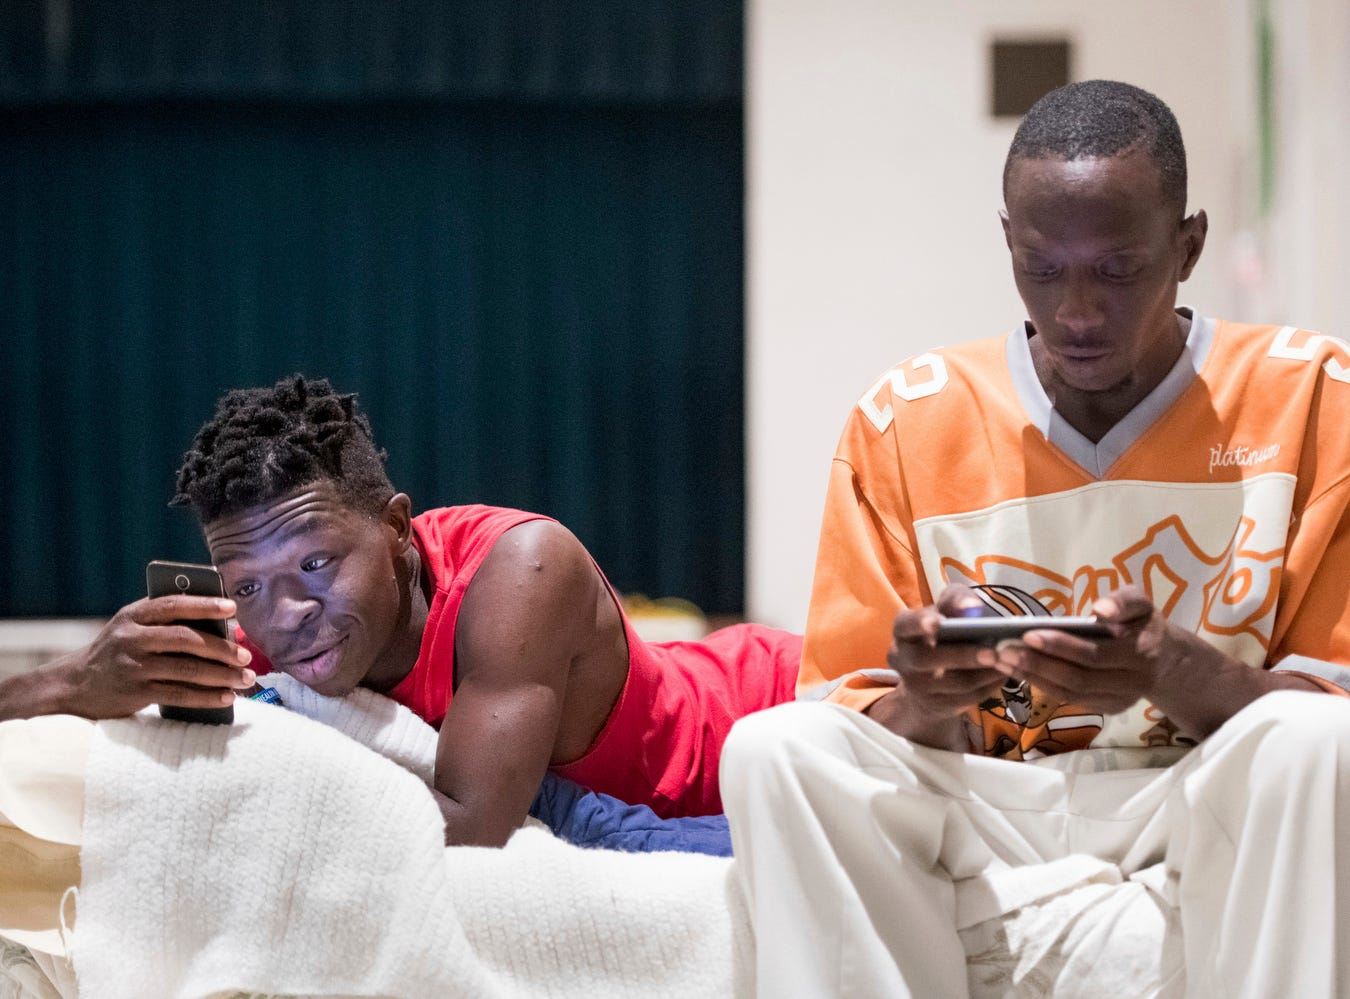 Eric Edwards Jr., left, and Elliott Farmer Jr. look at their phones from a blow up mattress at a storm shelter at Washington Street United Methodist Church as Florence slowly moved across the East Coast Friday, Sept. 14, 2018, in Columbia, S.C.